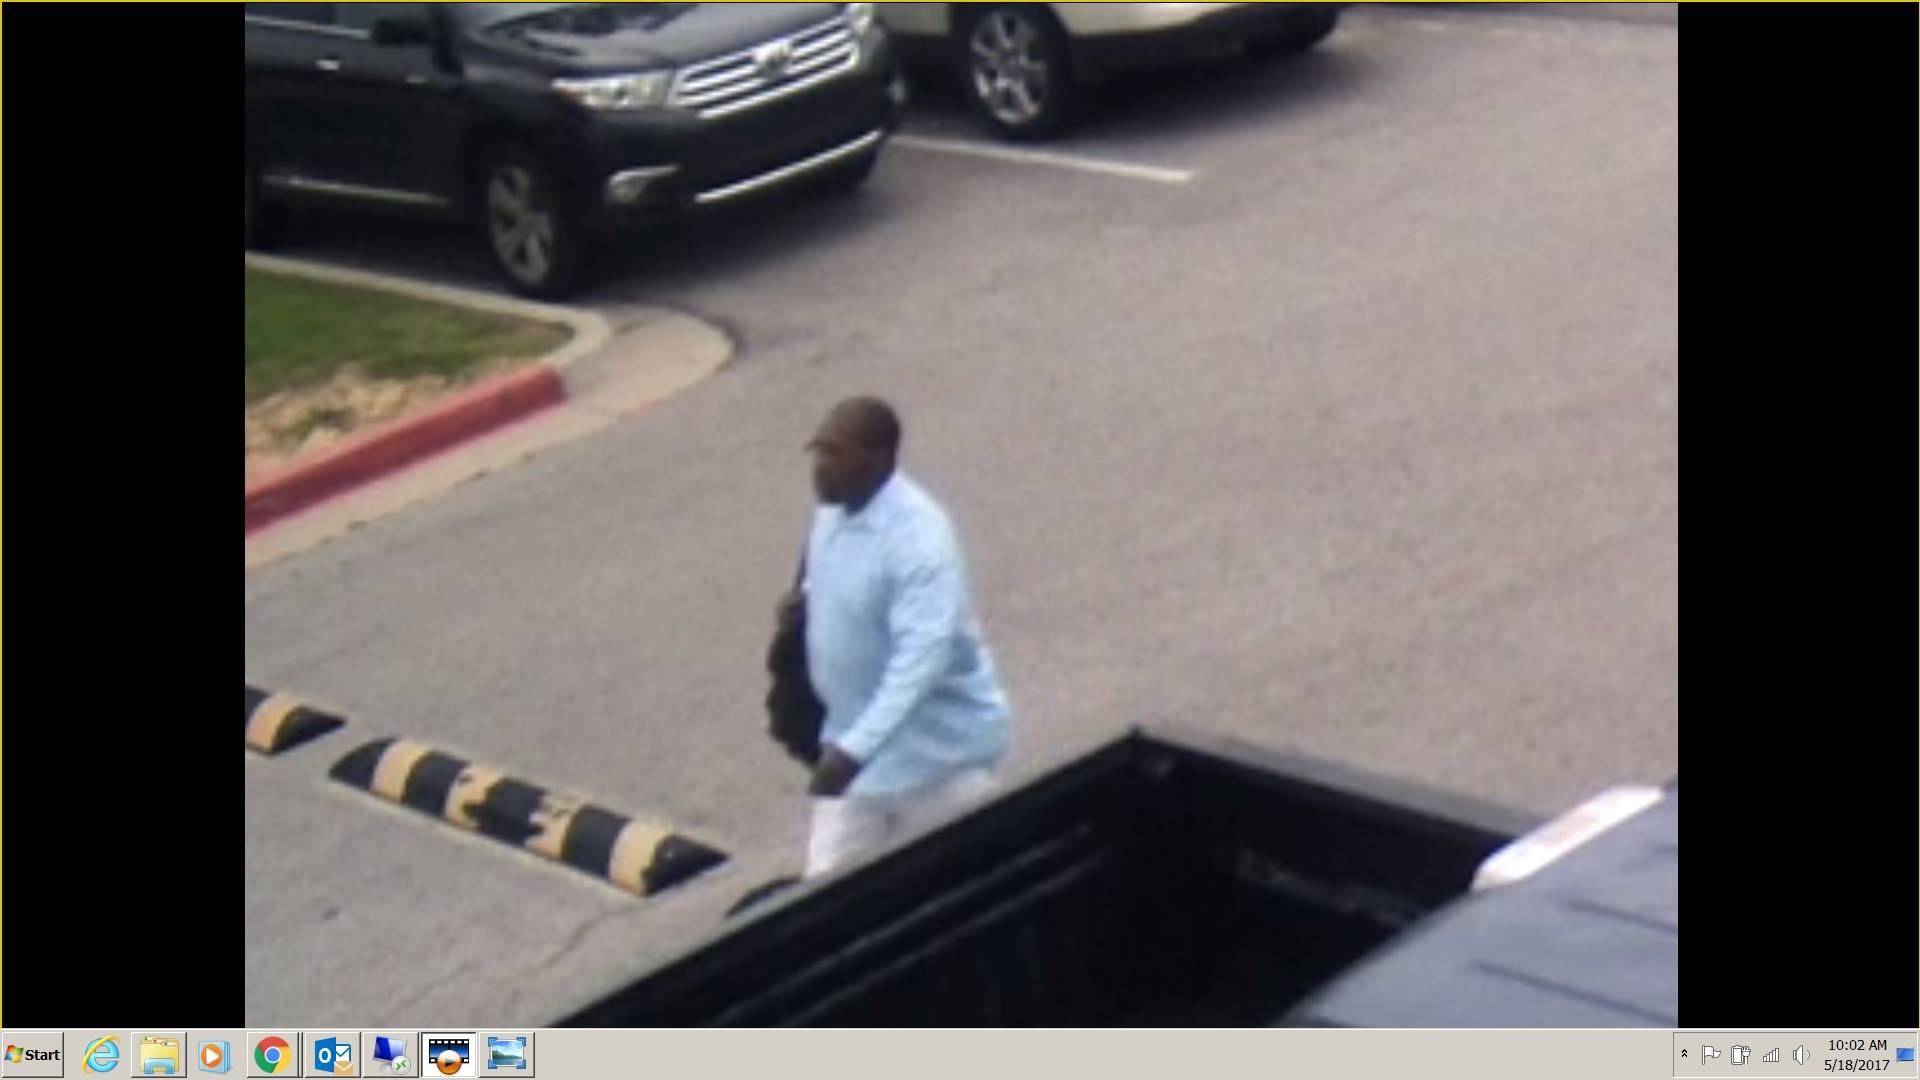 Surveillance video shows a man that police say burglarized a vehicle May 16 at Bishop McGuinness High School. (Oklahoma City Police Department)